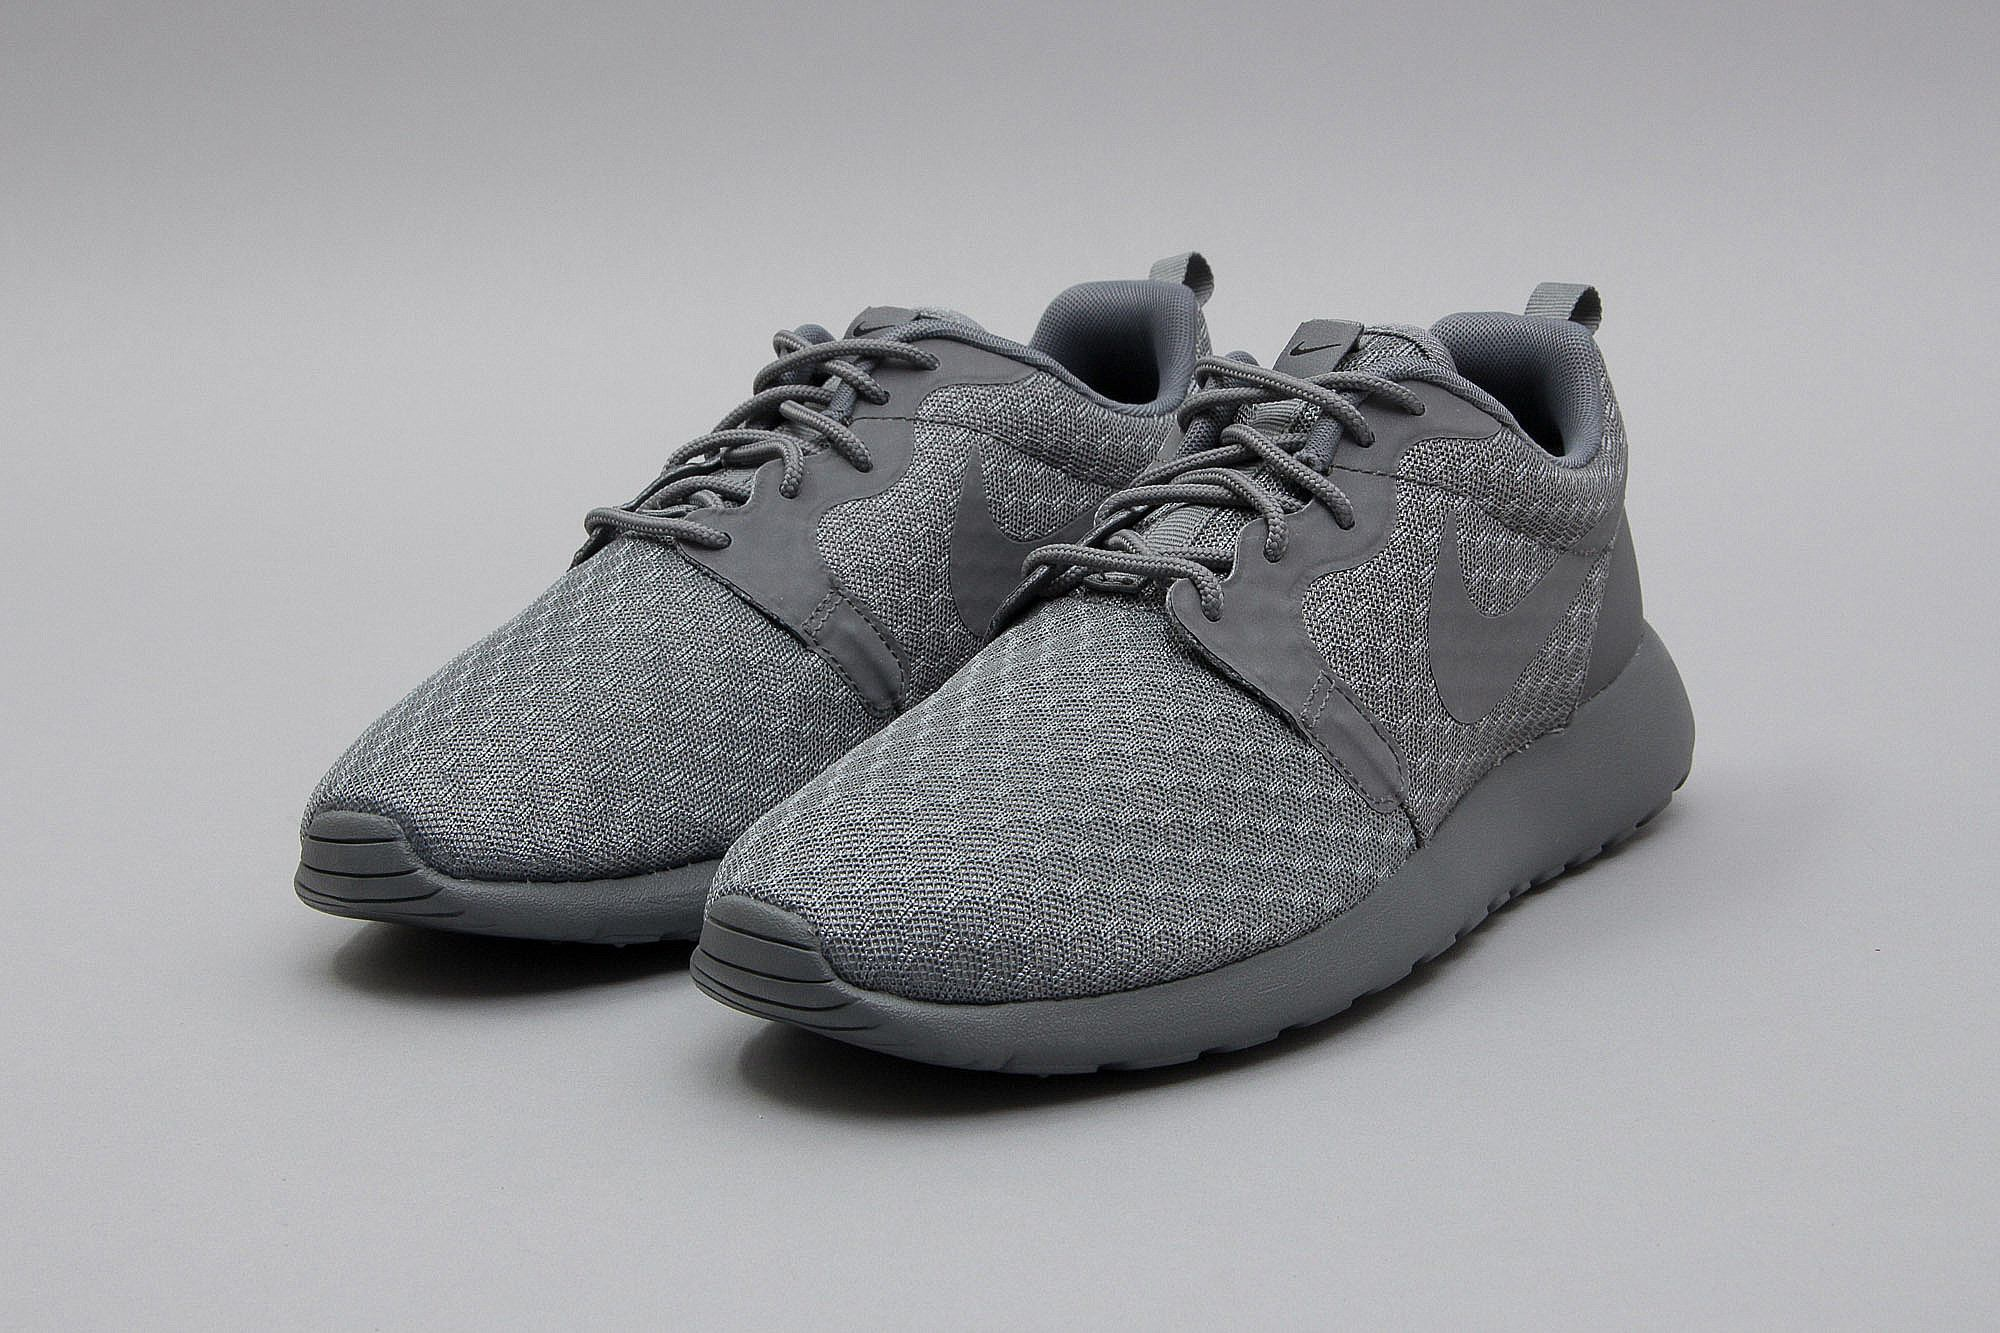 free shipping 1a2c5 f6608 ... spain nike roshe one hyperfuse triple black 72a1e 44d45 . ...